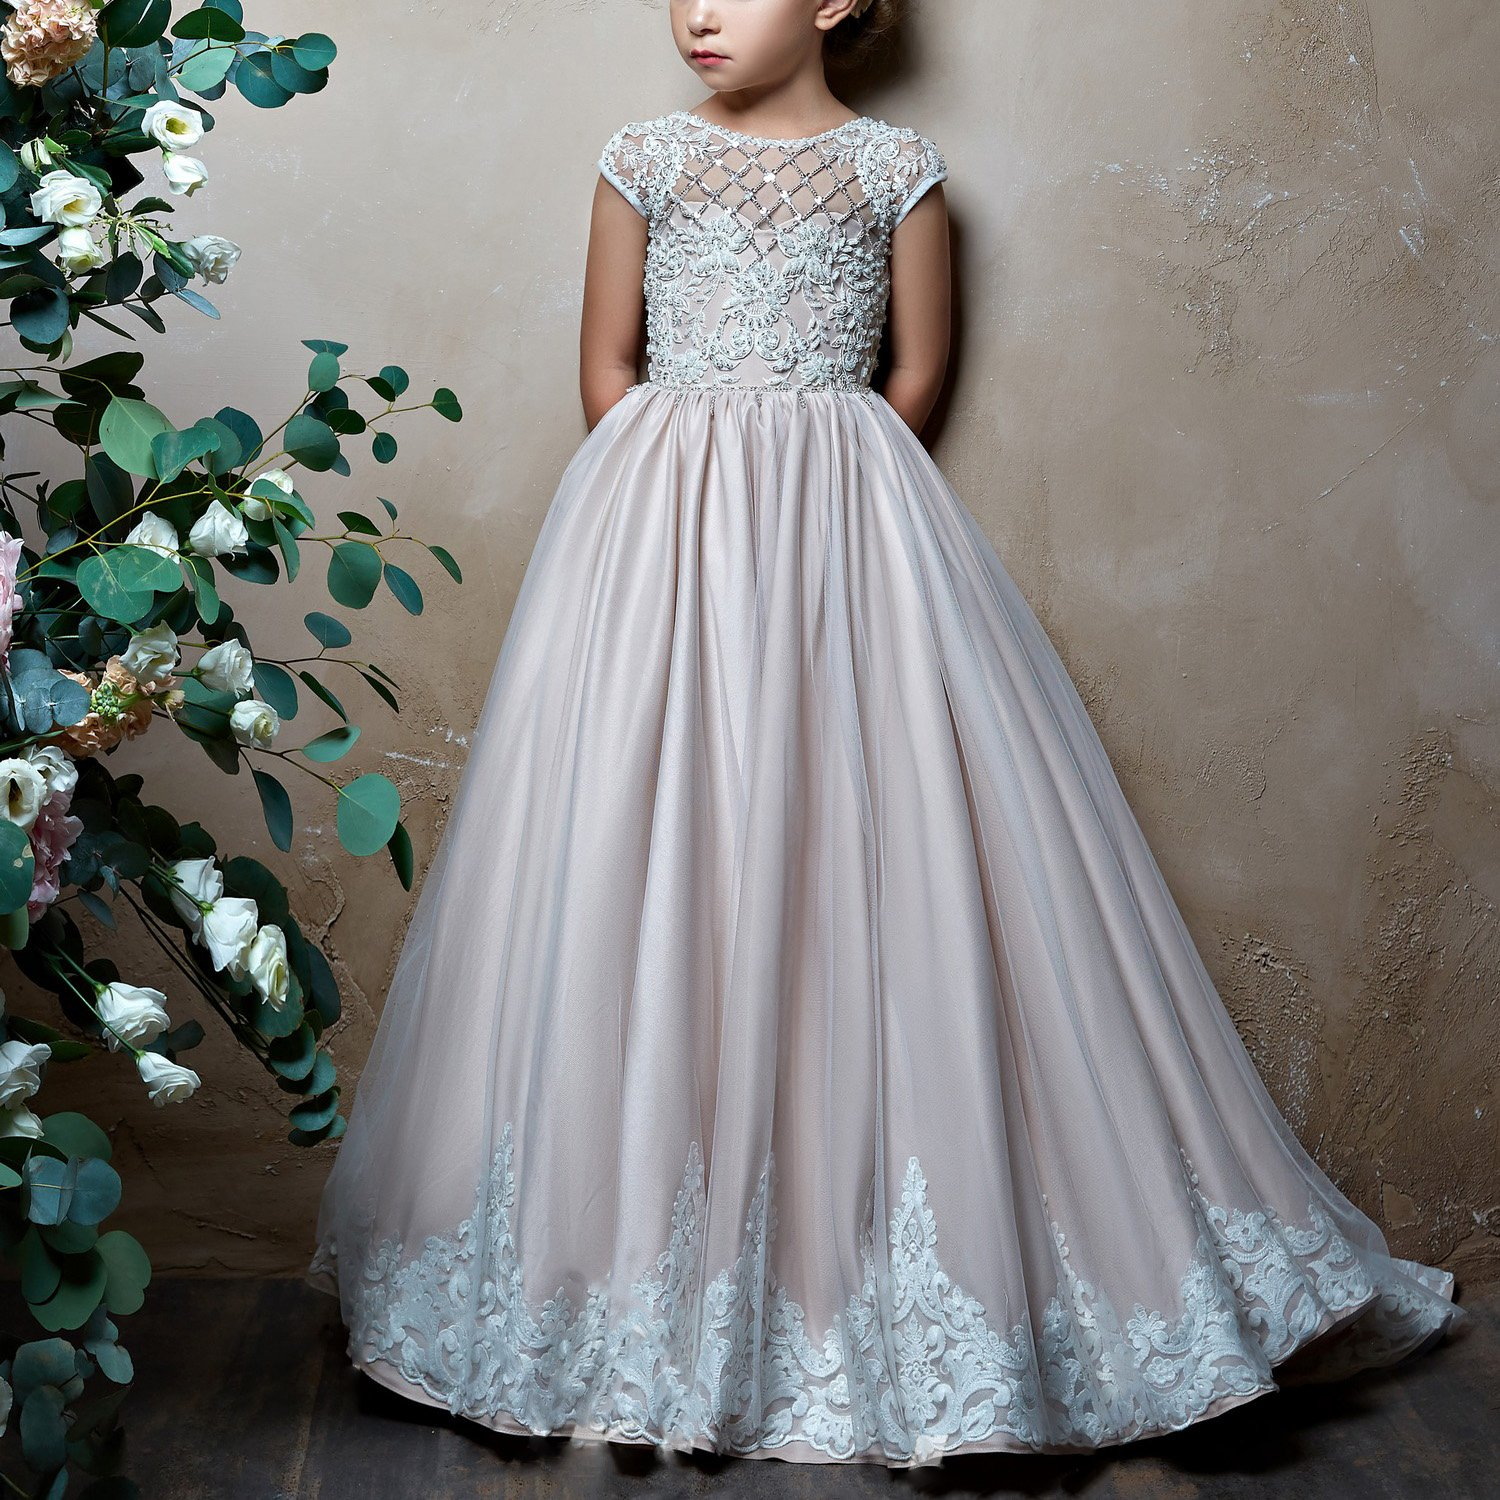 Amazon.com: SHENLINQIJ Girls 2-14 Years Lace Bridesmaid Wedding Flower Girl Party Dress with Embroidery: Clothing